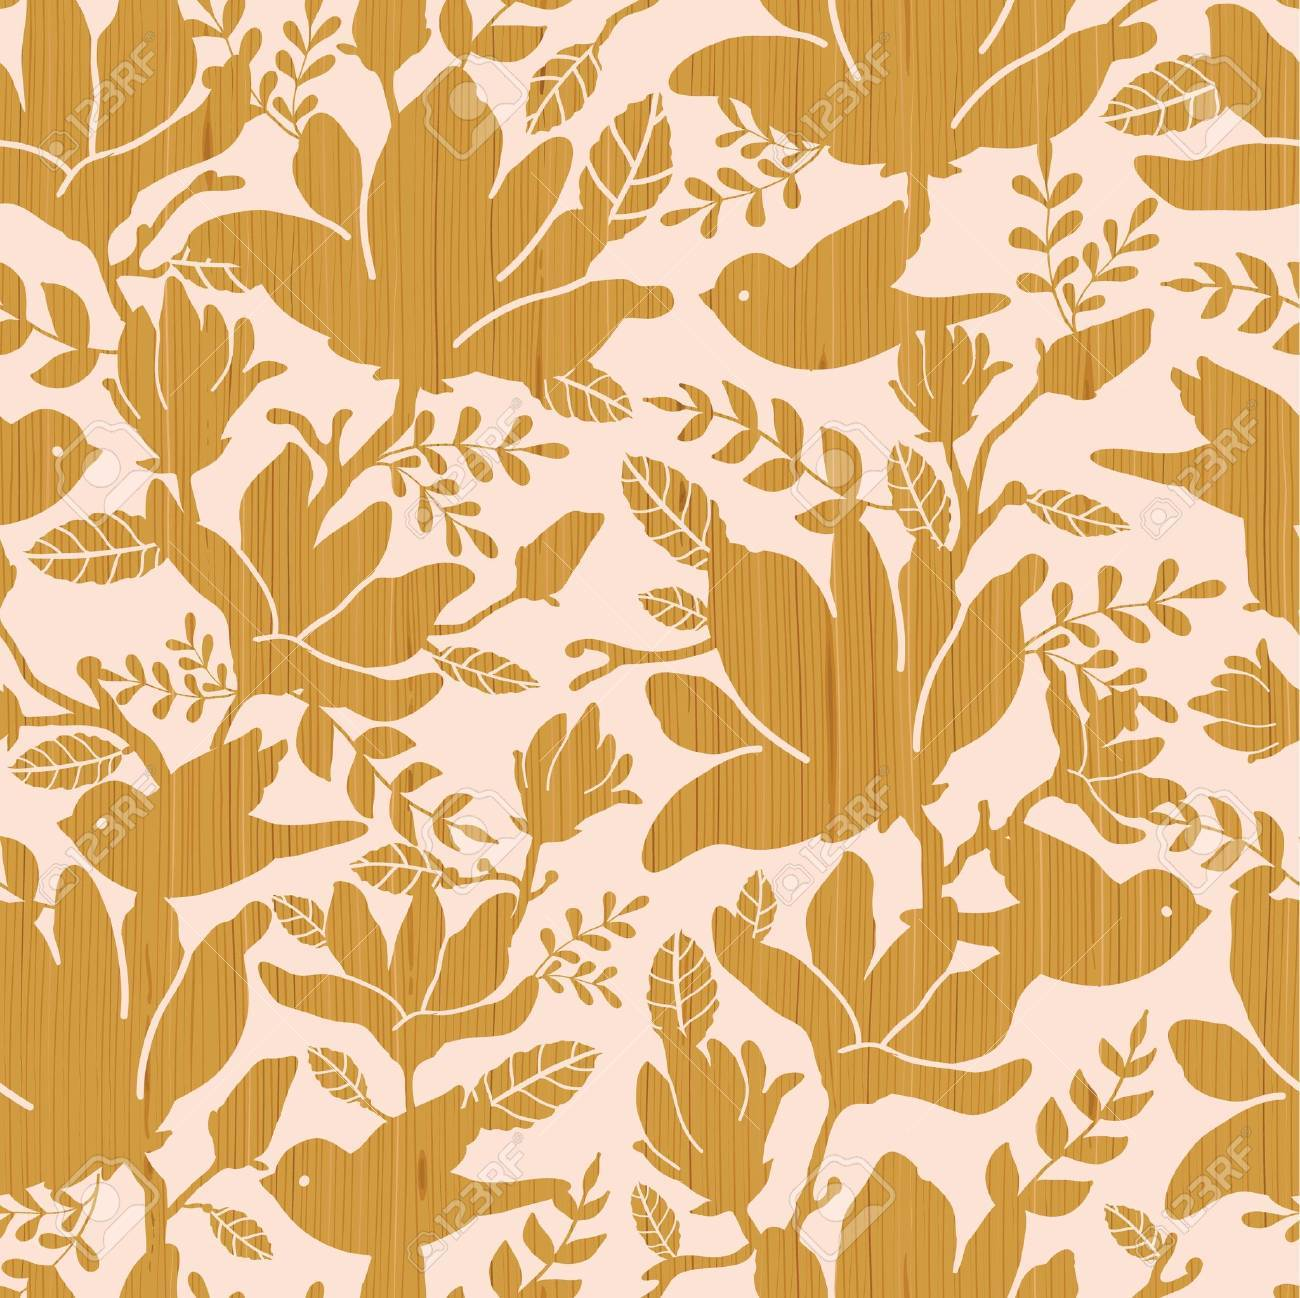 Textured wooden magnolia flowers seamless pattern background Stock Vector - 16675696